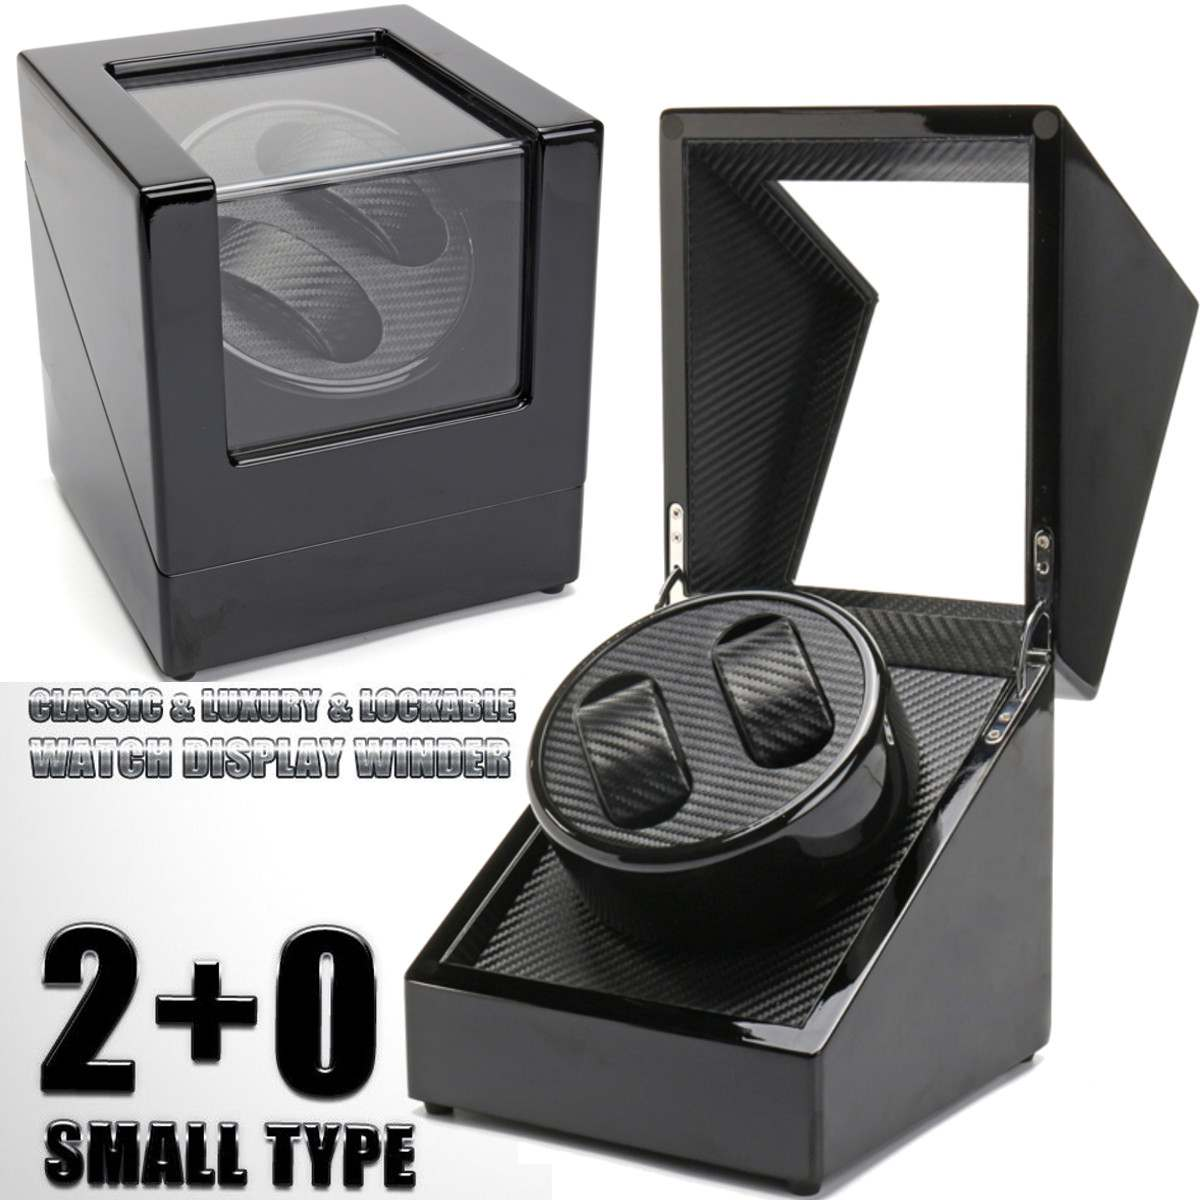 Double Watch Winders Wooden Lacquer Piano Glossy Black Carbon Fiber Quiet Motor Storage Display Watches Box US Plug 2019 New | Fotoflaco.net